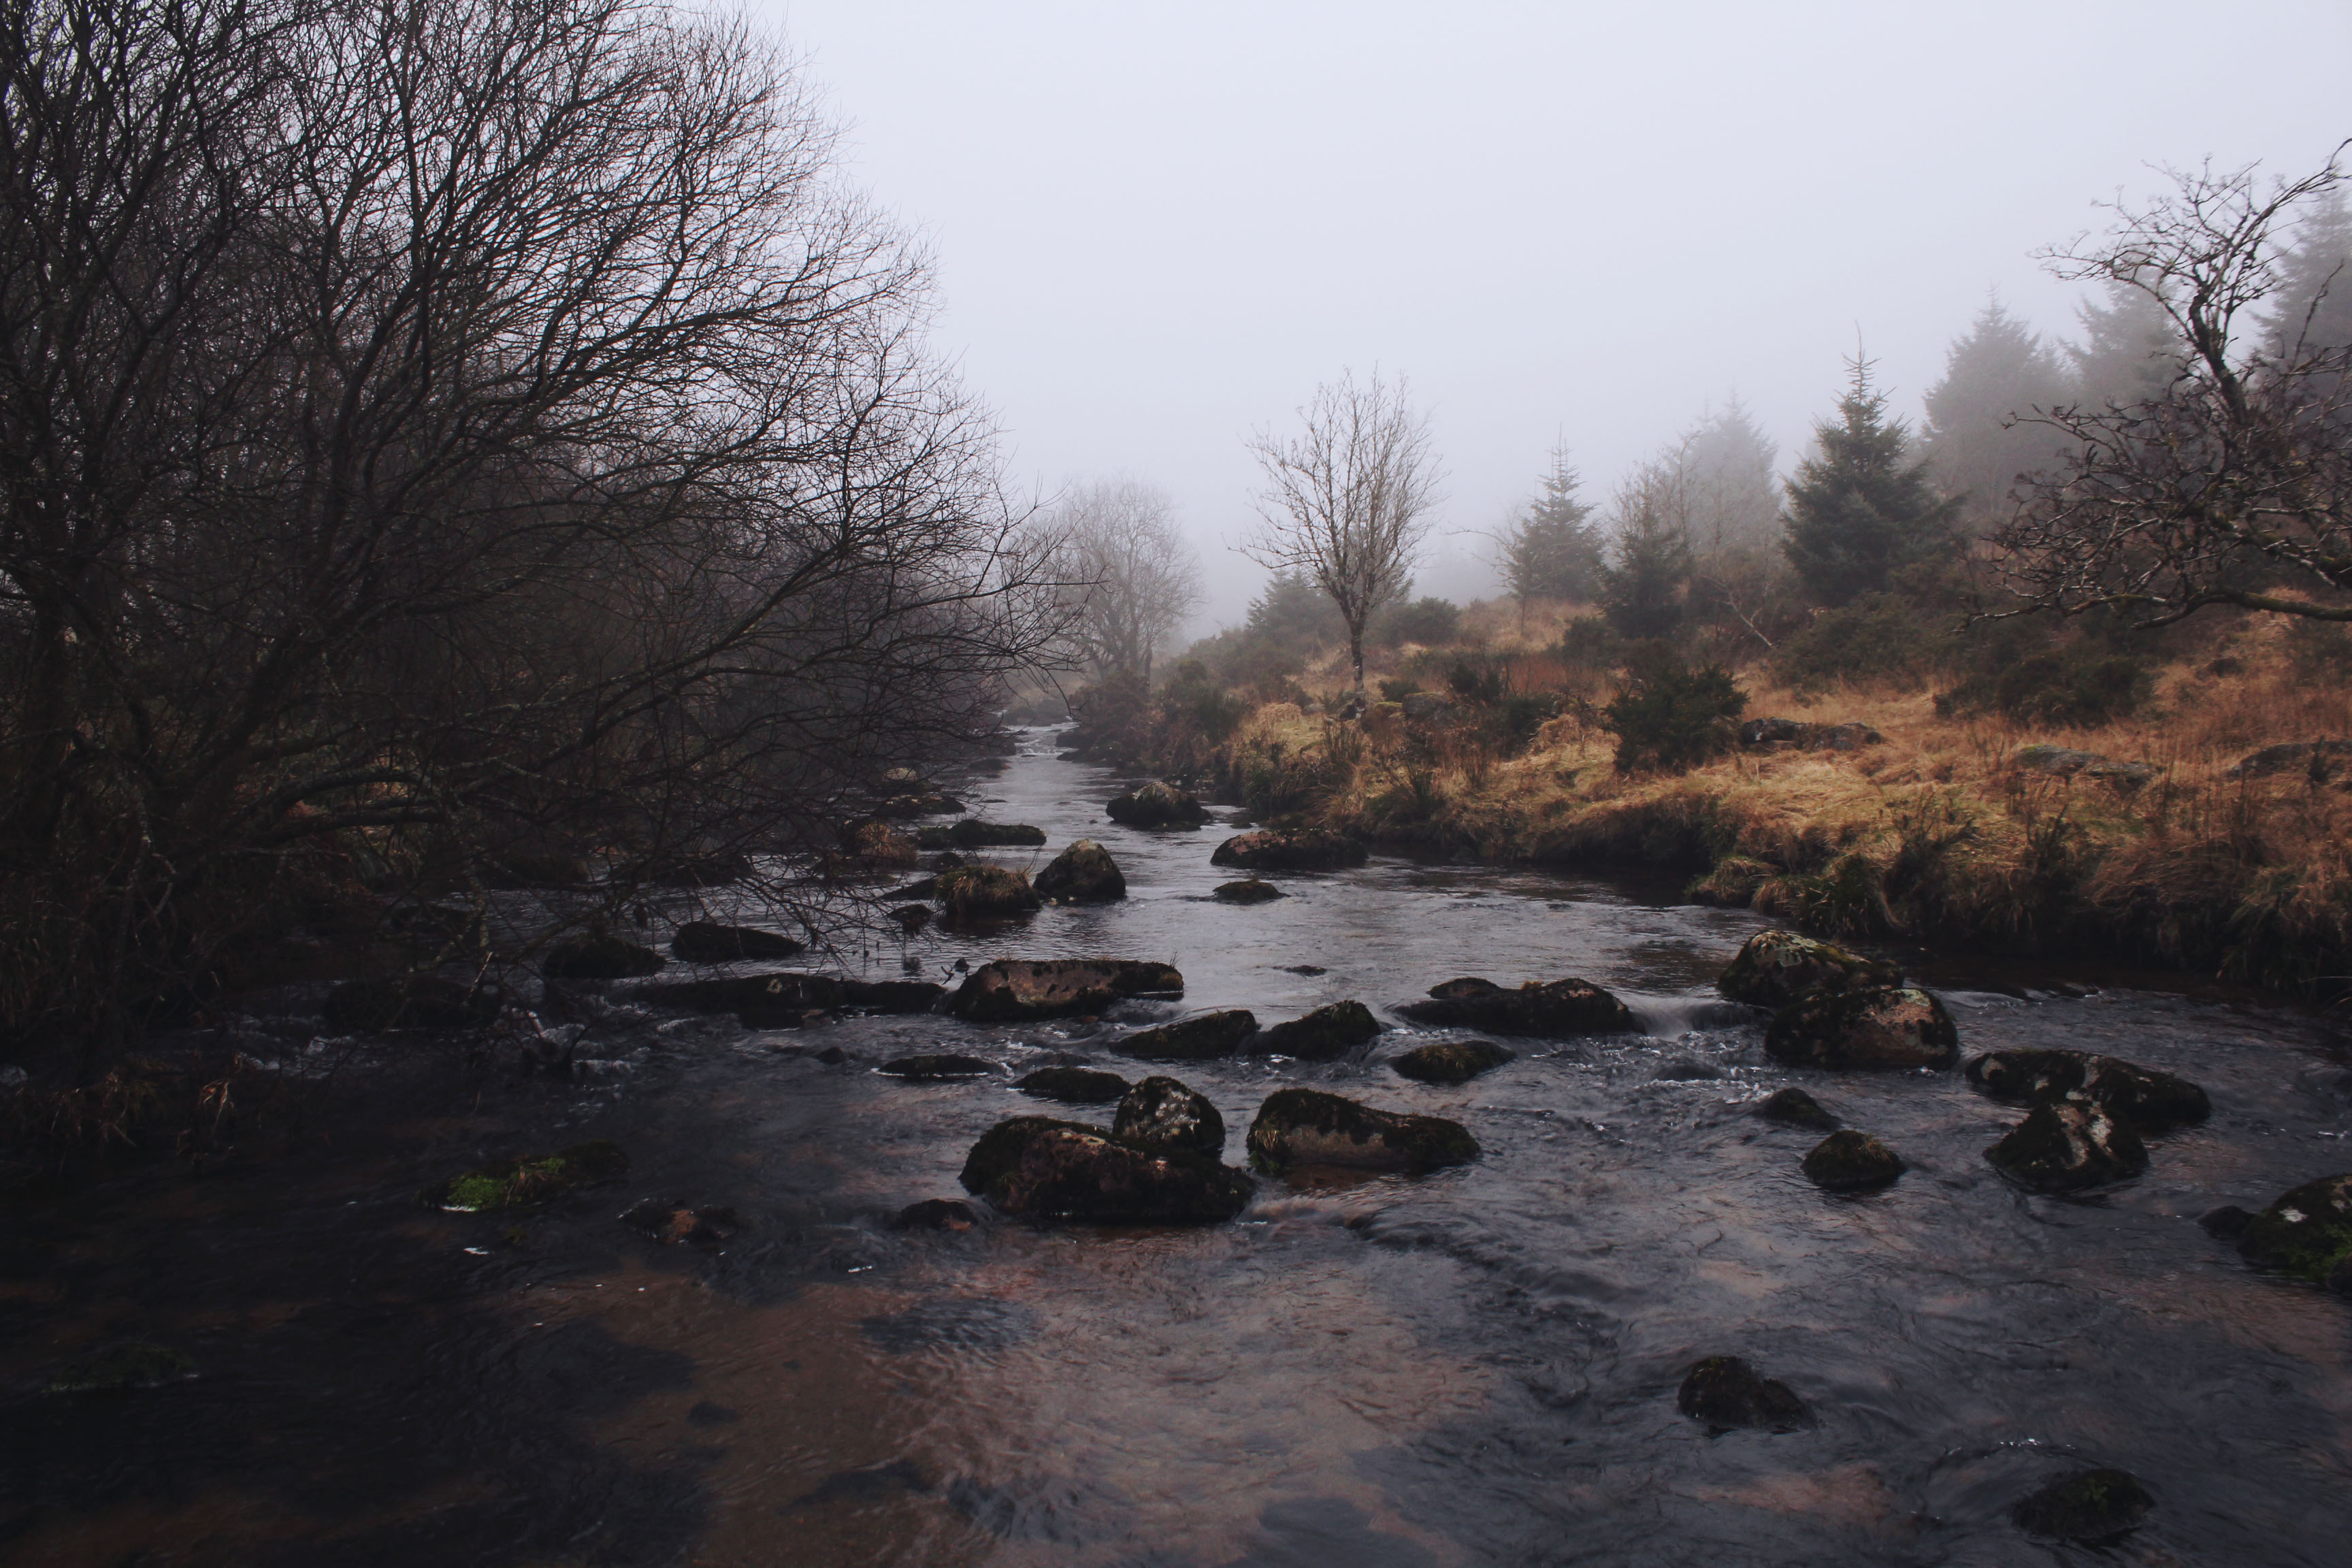 Misty rocky river near Bellever Forest, Dartmoor